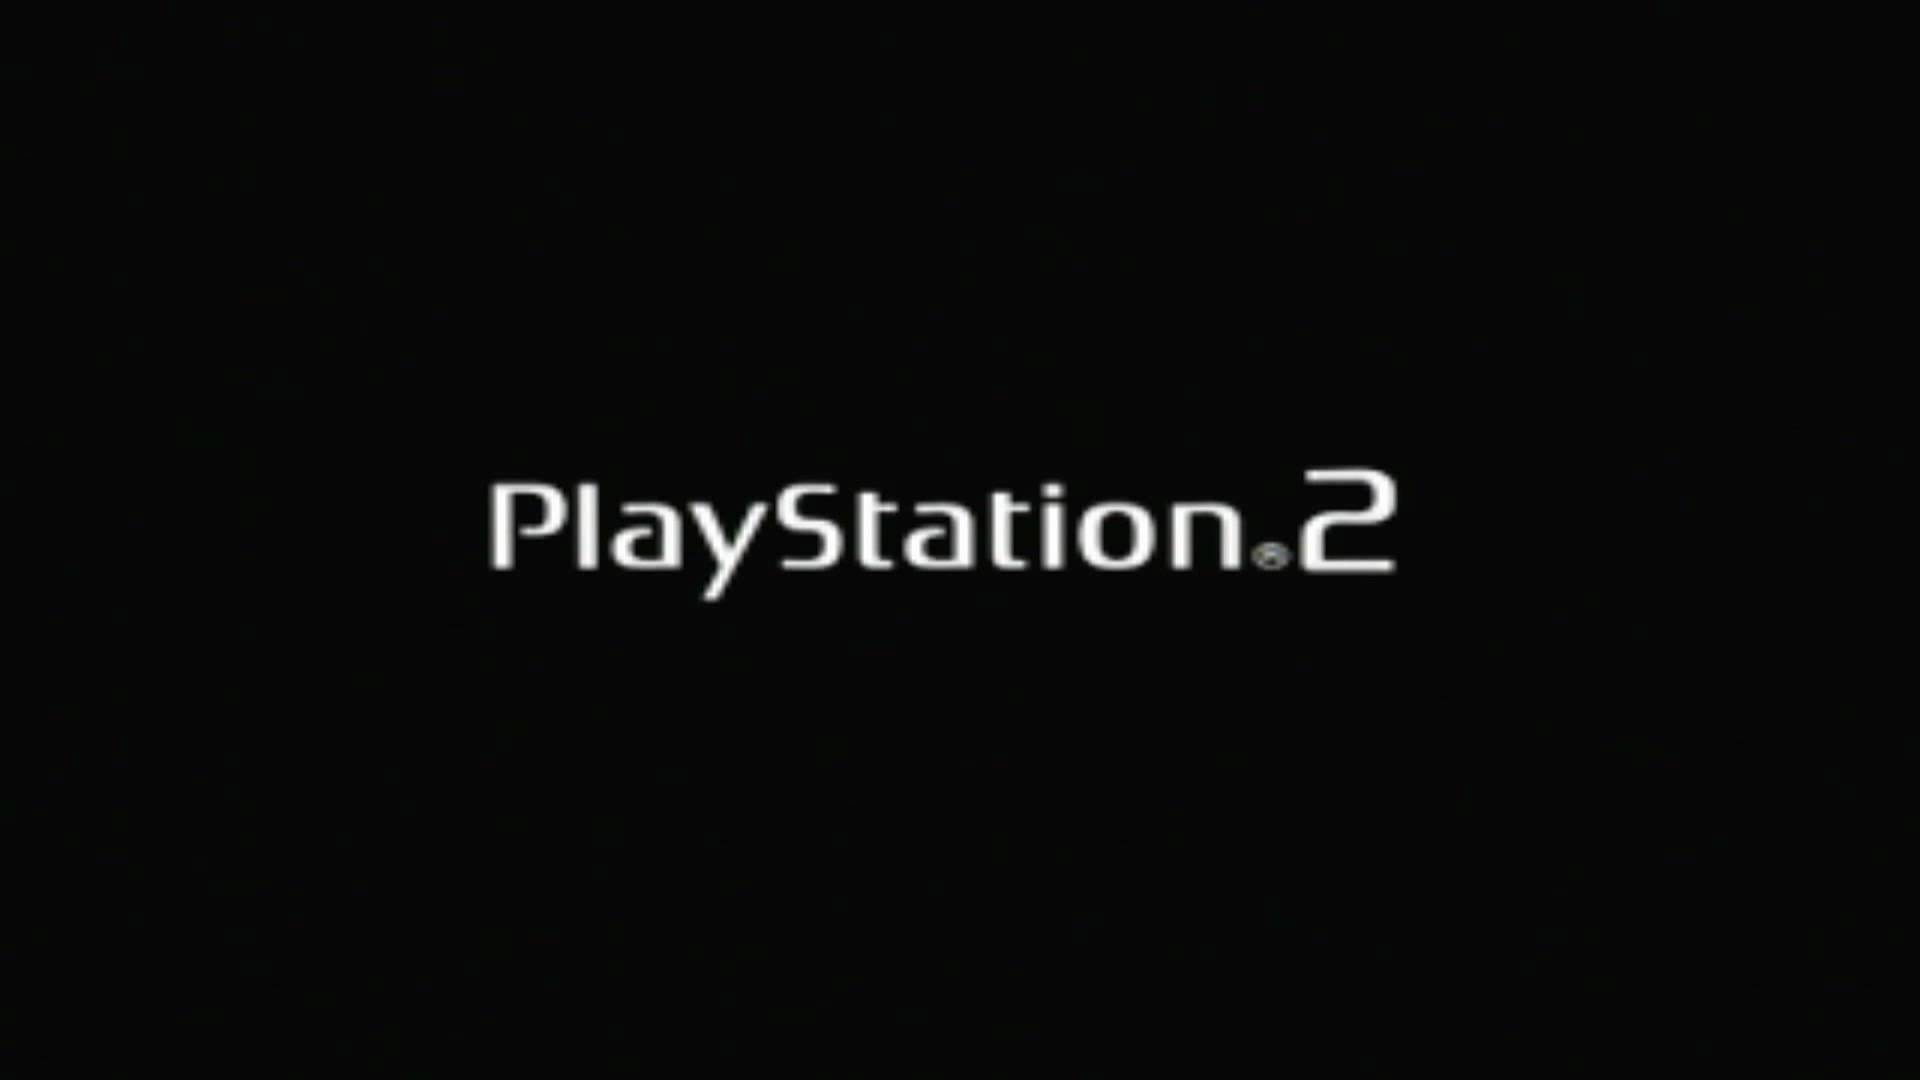 playstation 2 wallpapers - wallpaper cave